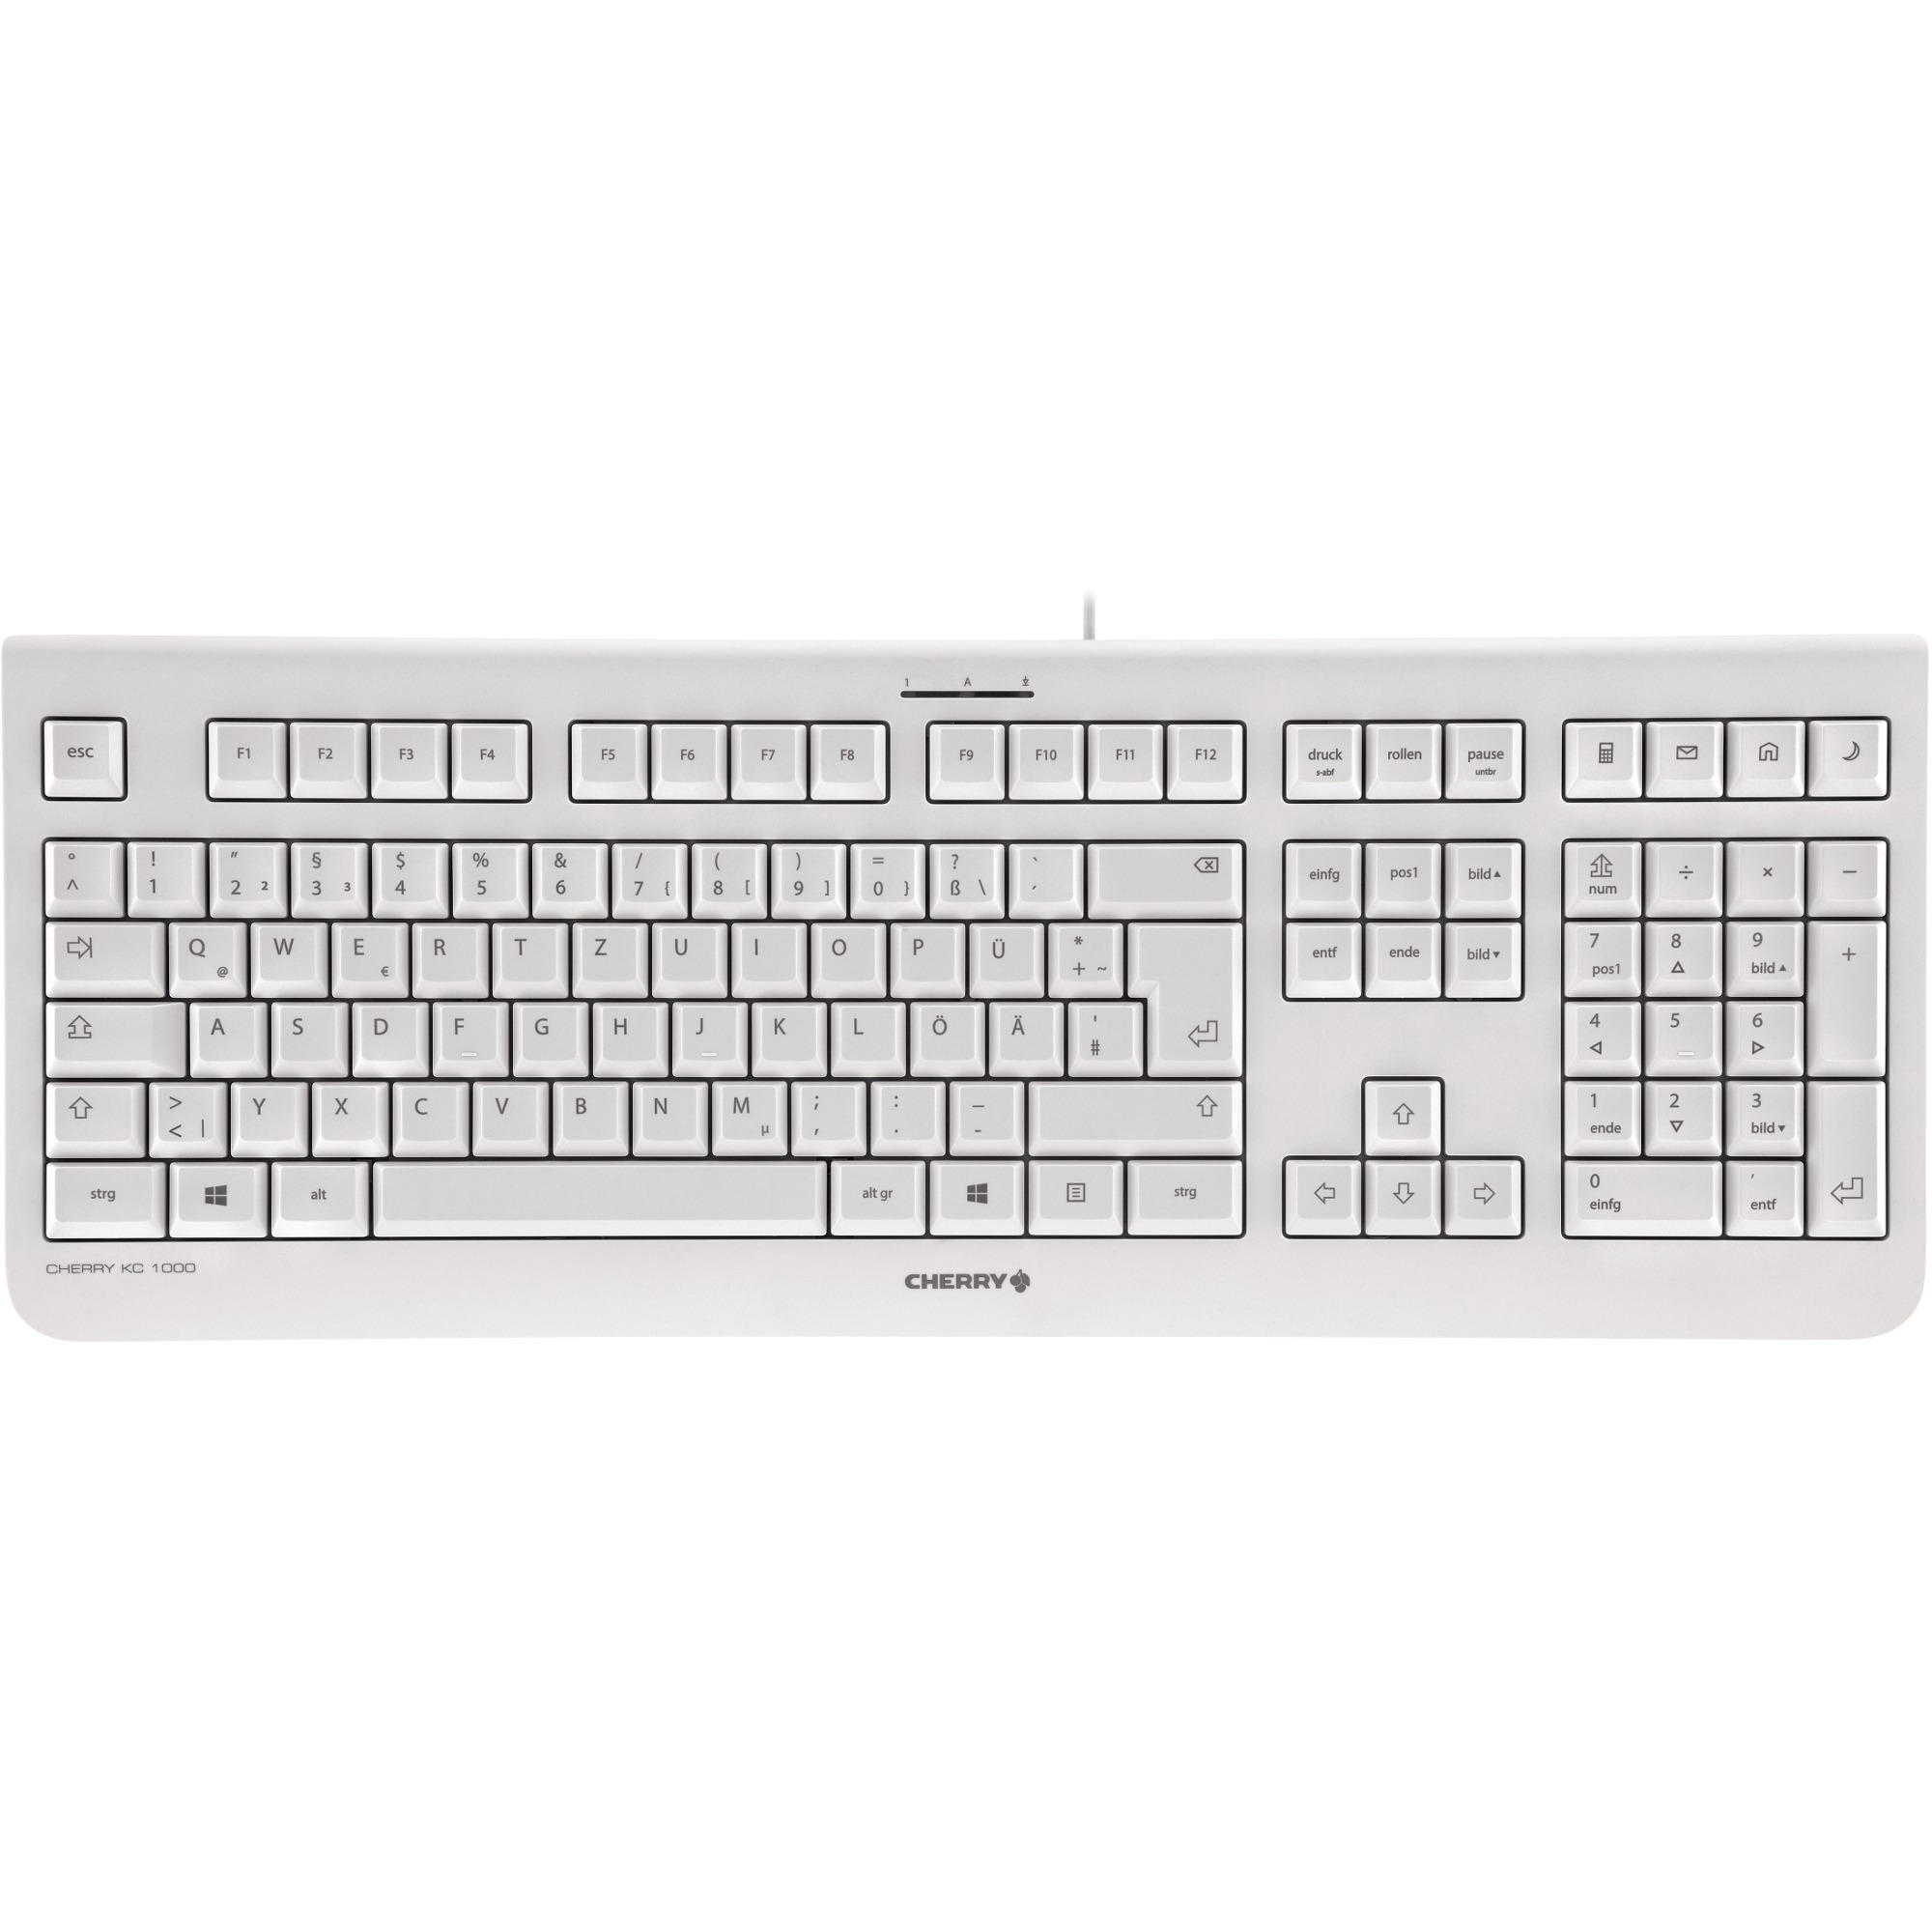 ... CHERRY KC 1000 Keyboard - Cable Connectivity - Pale Gray ... 1909a74fd9218